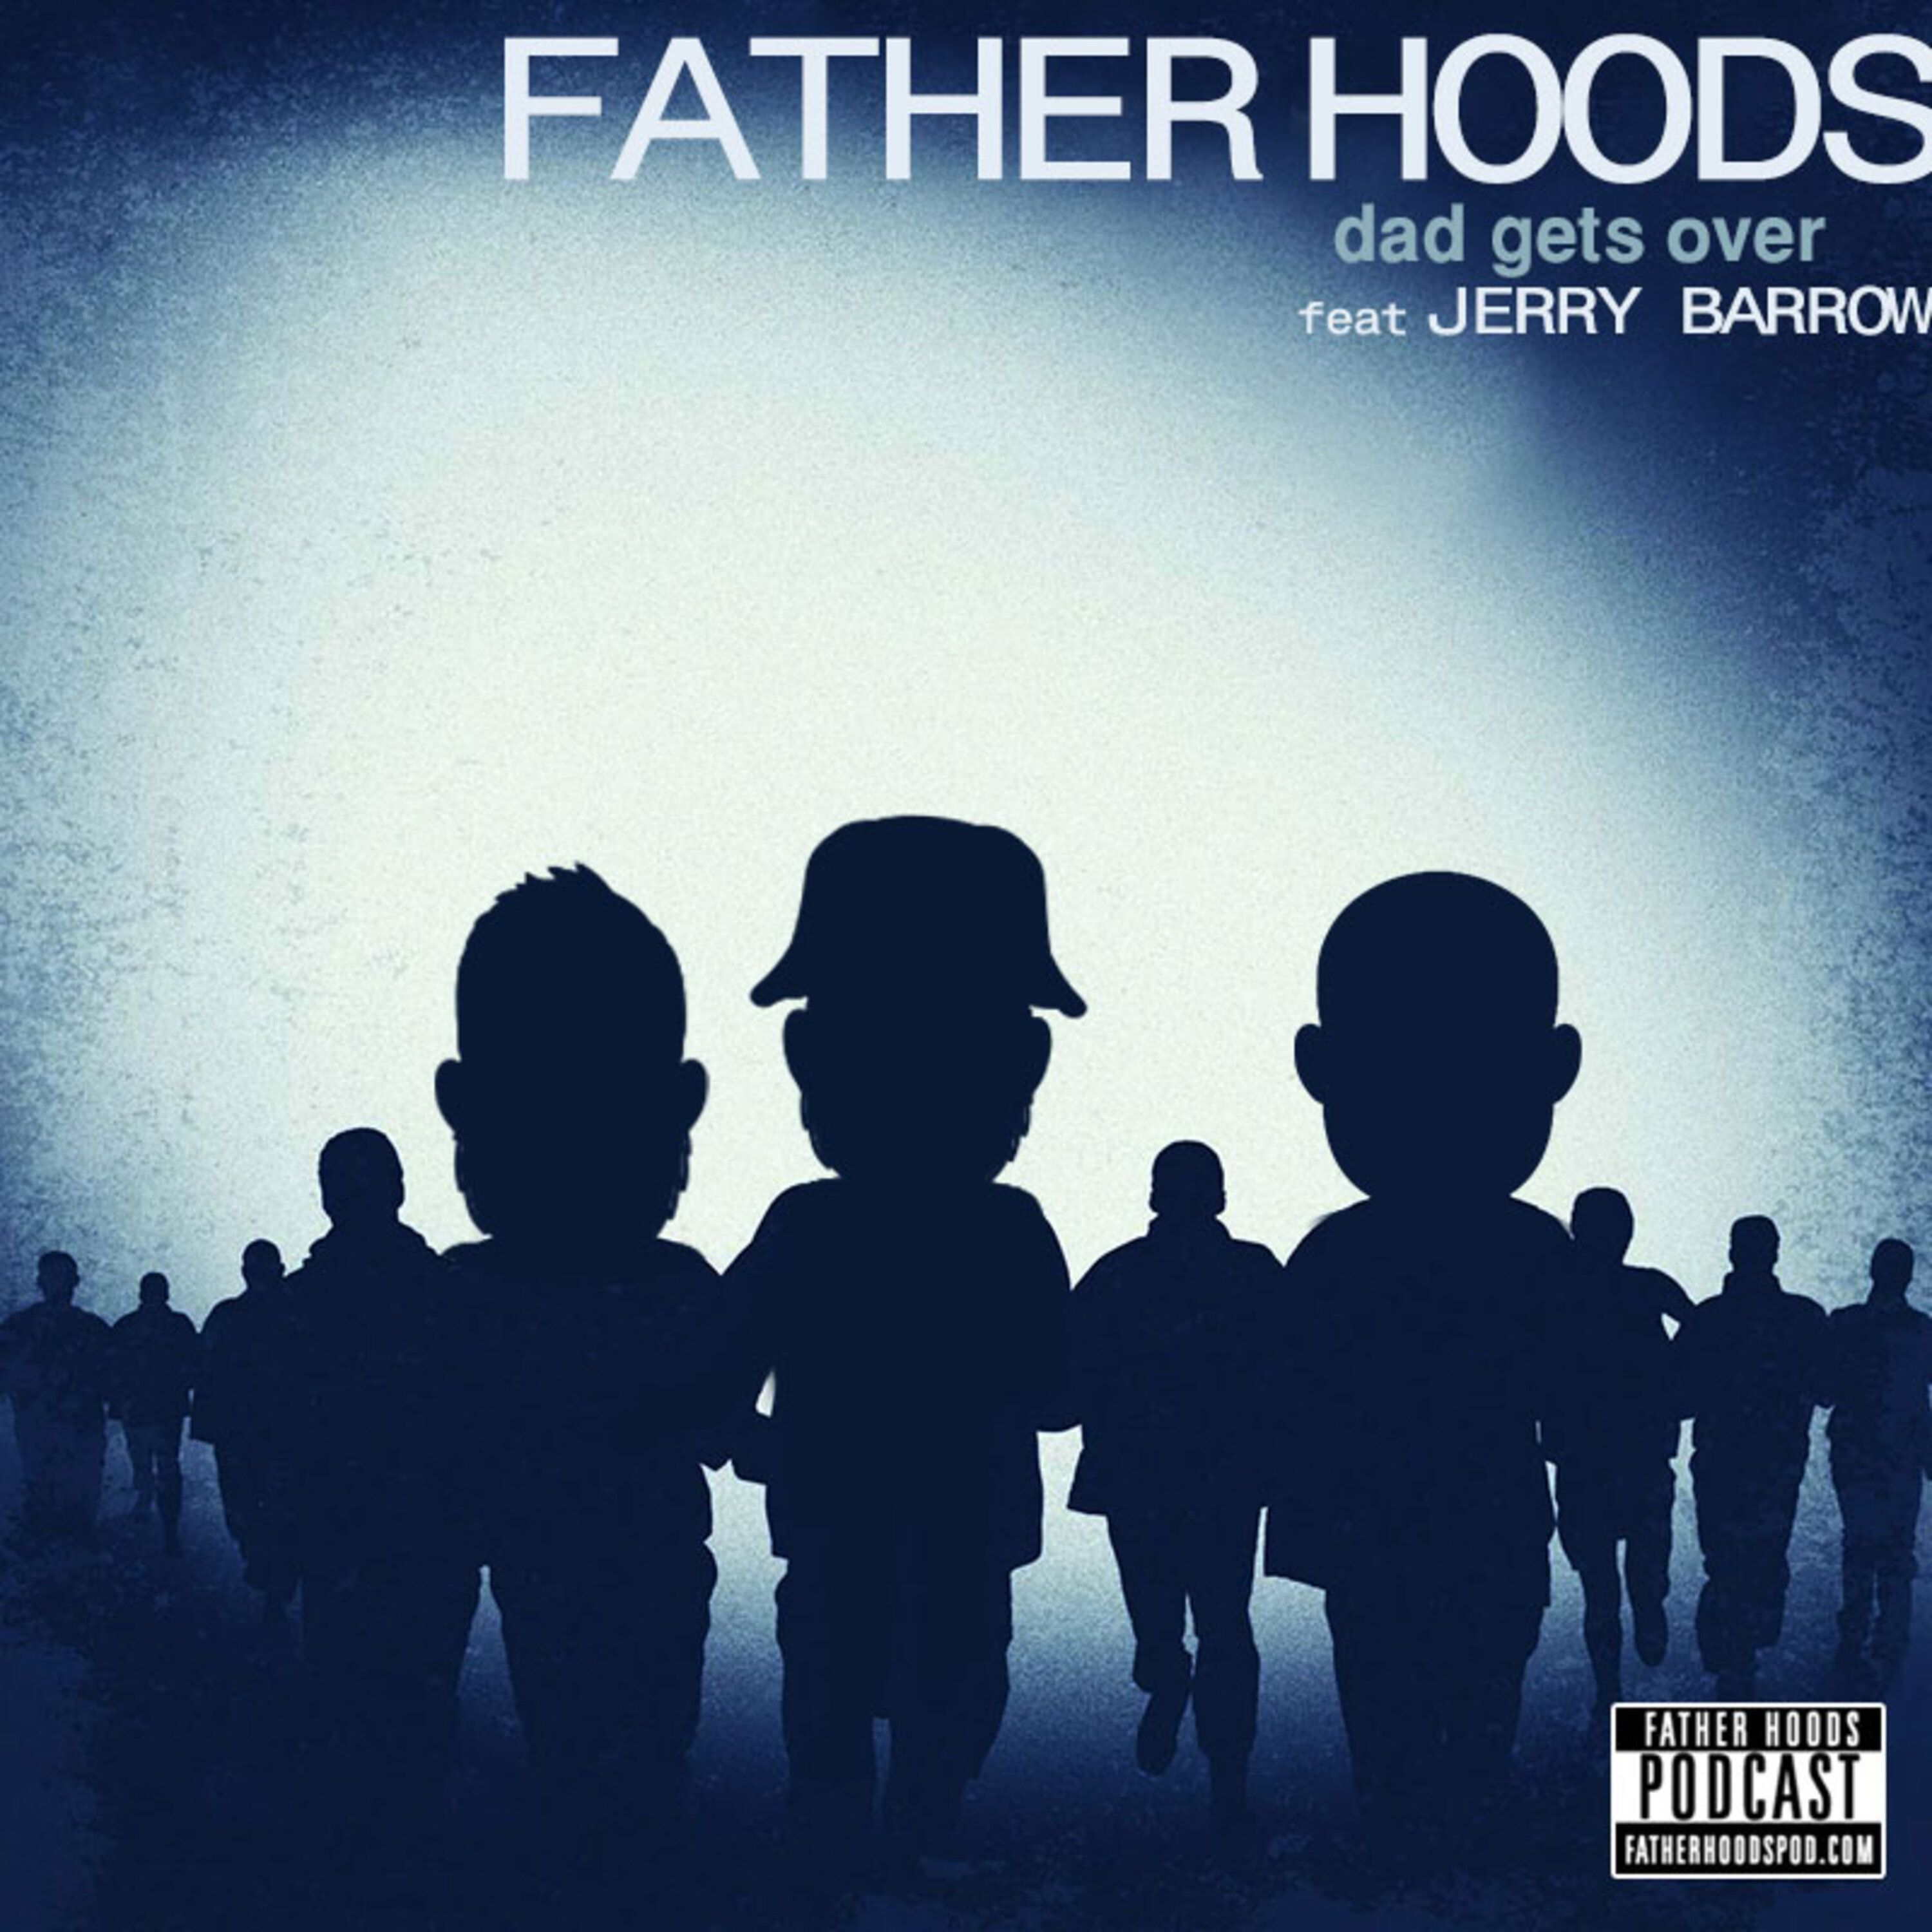 #98: Dad Gets Over feat. Jerry Barrow